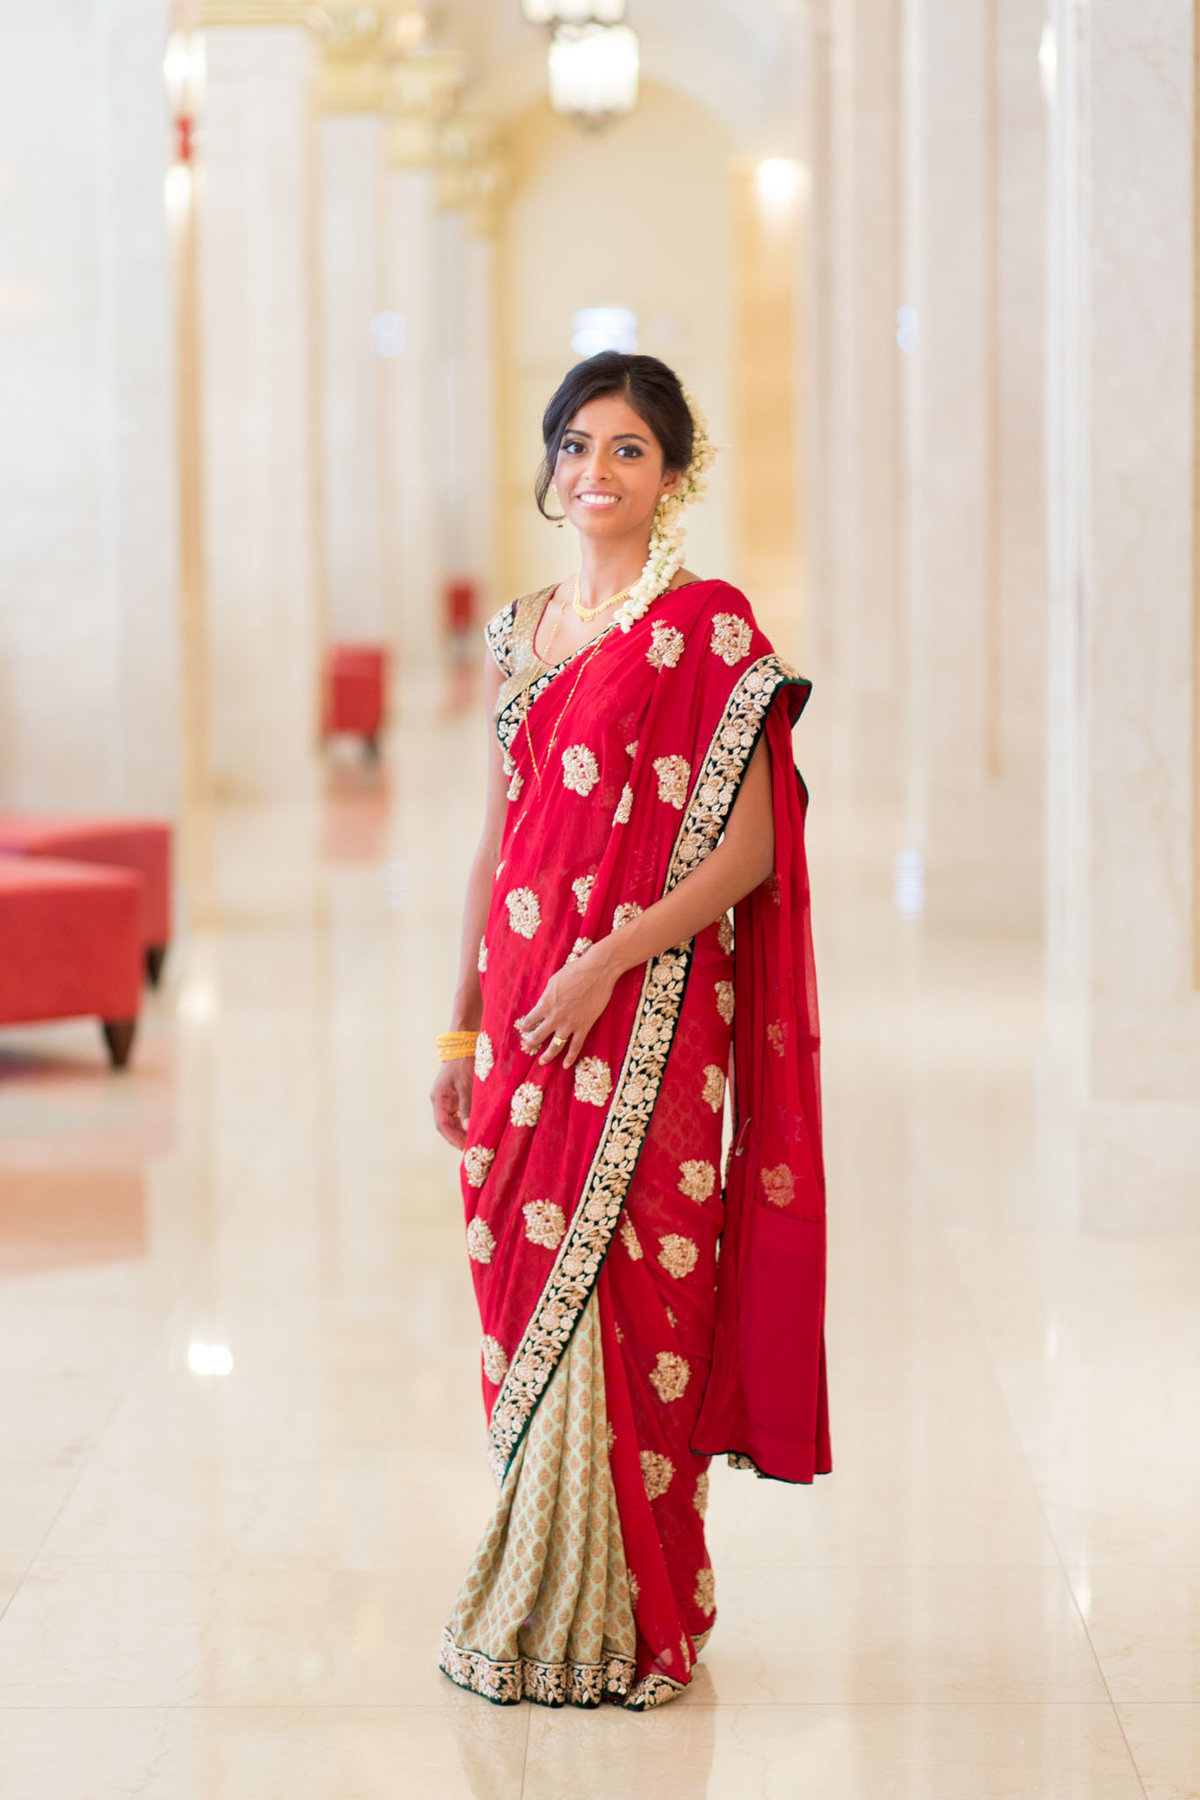 Harold-Washington-Library-South-Asian-Wedding-028